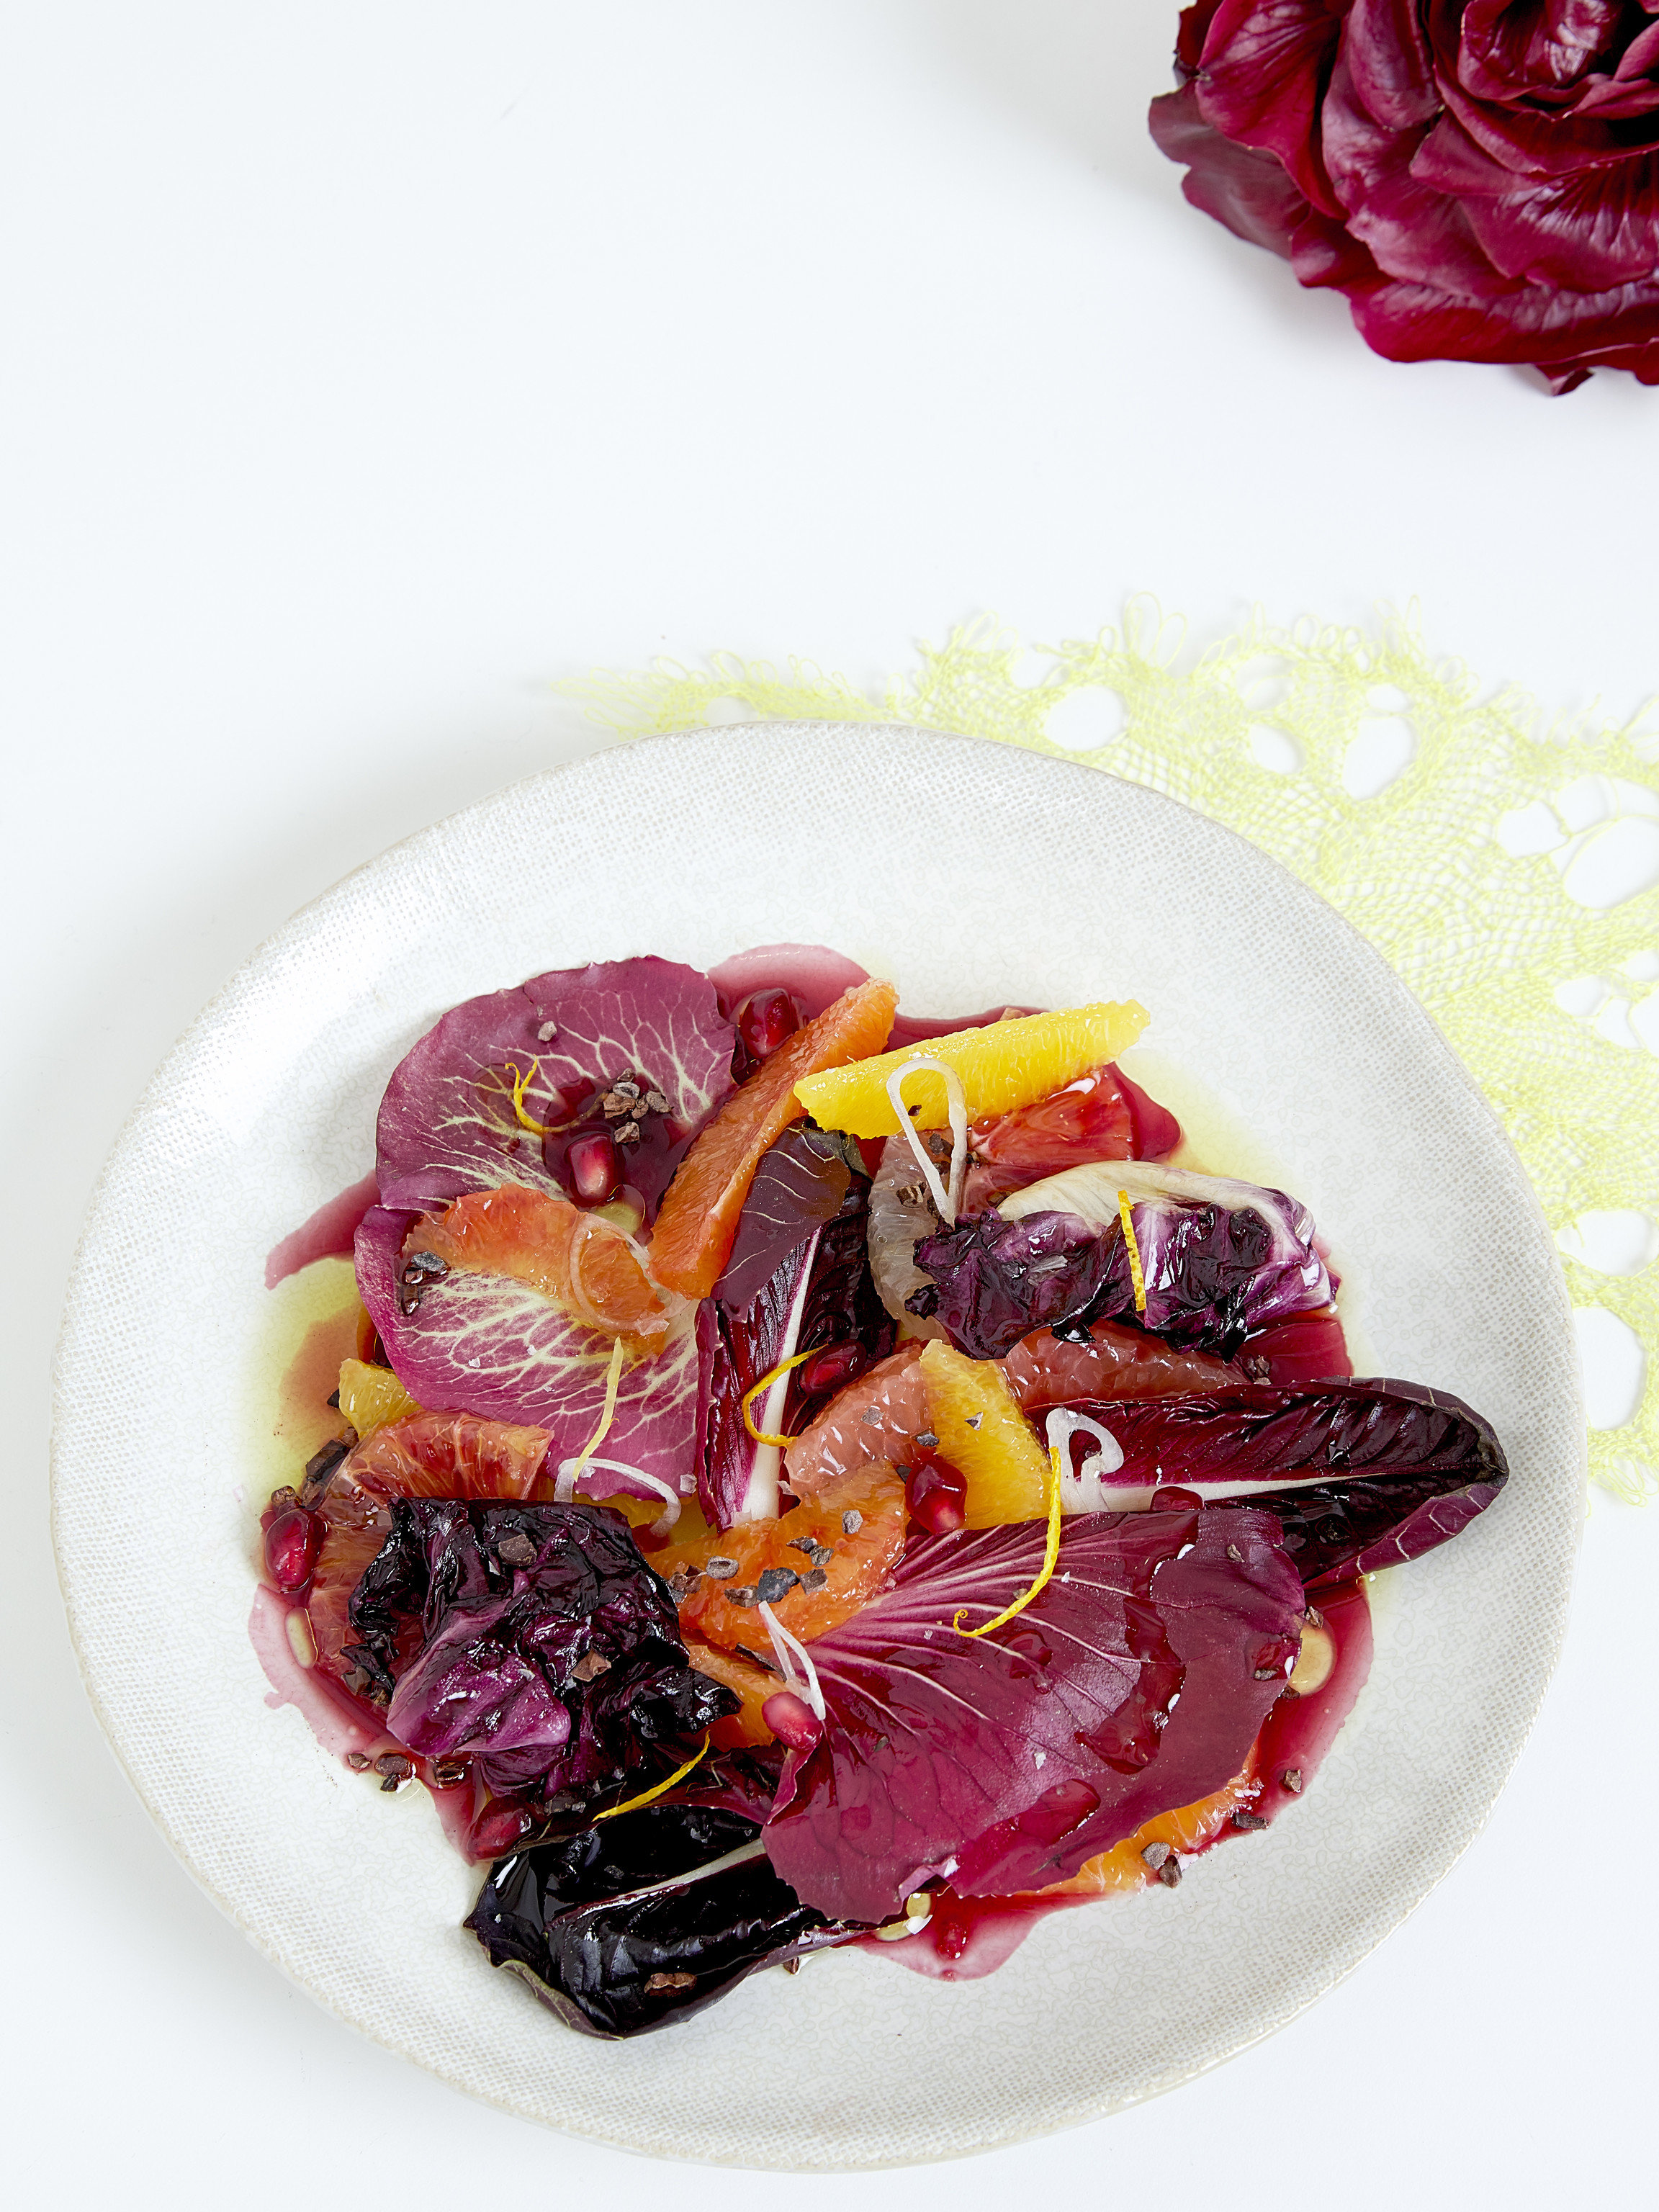 Trip Ideas plate food dish produce indoor vegetable plant land plant white fruit red cabbage flowering plant meat meal